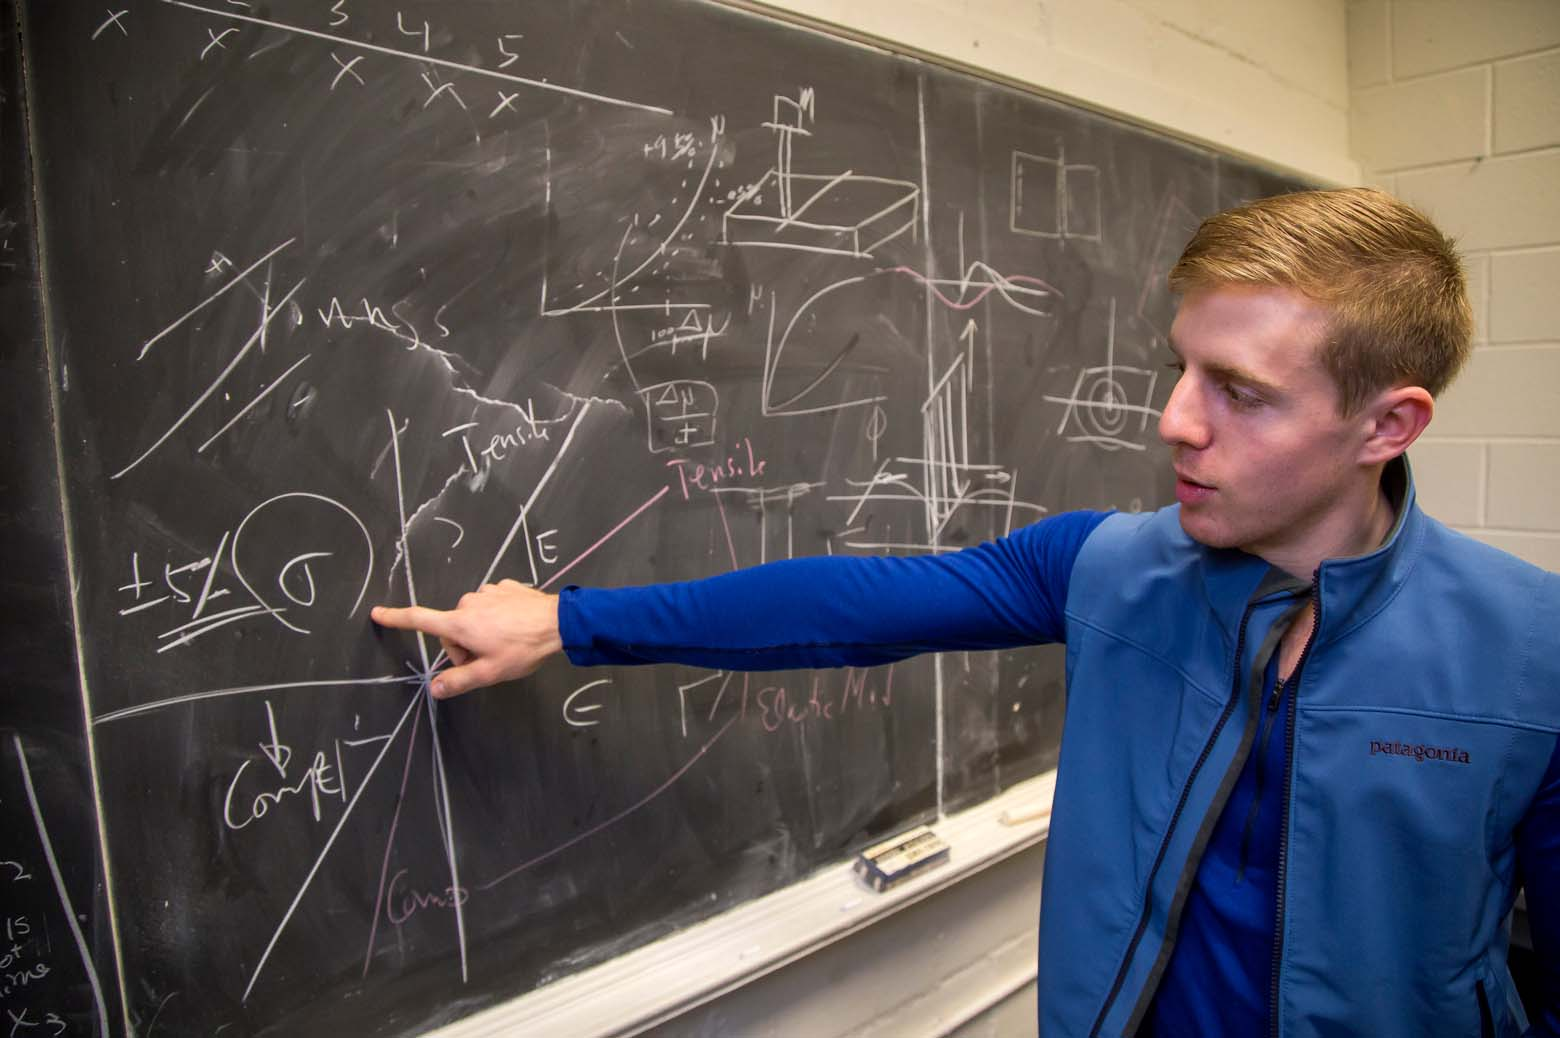 Mark stands at a chalkboard and points at equations.